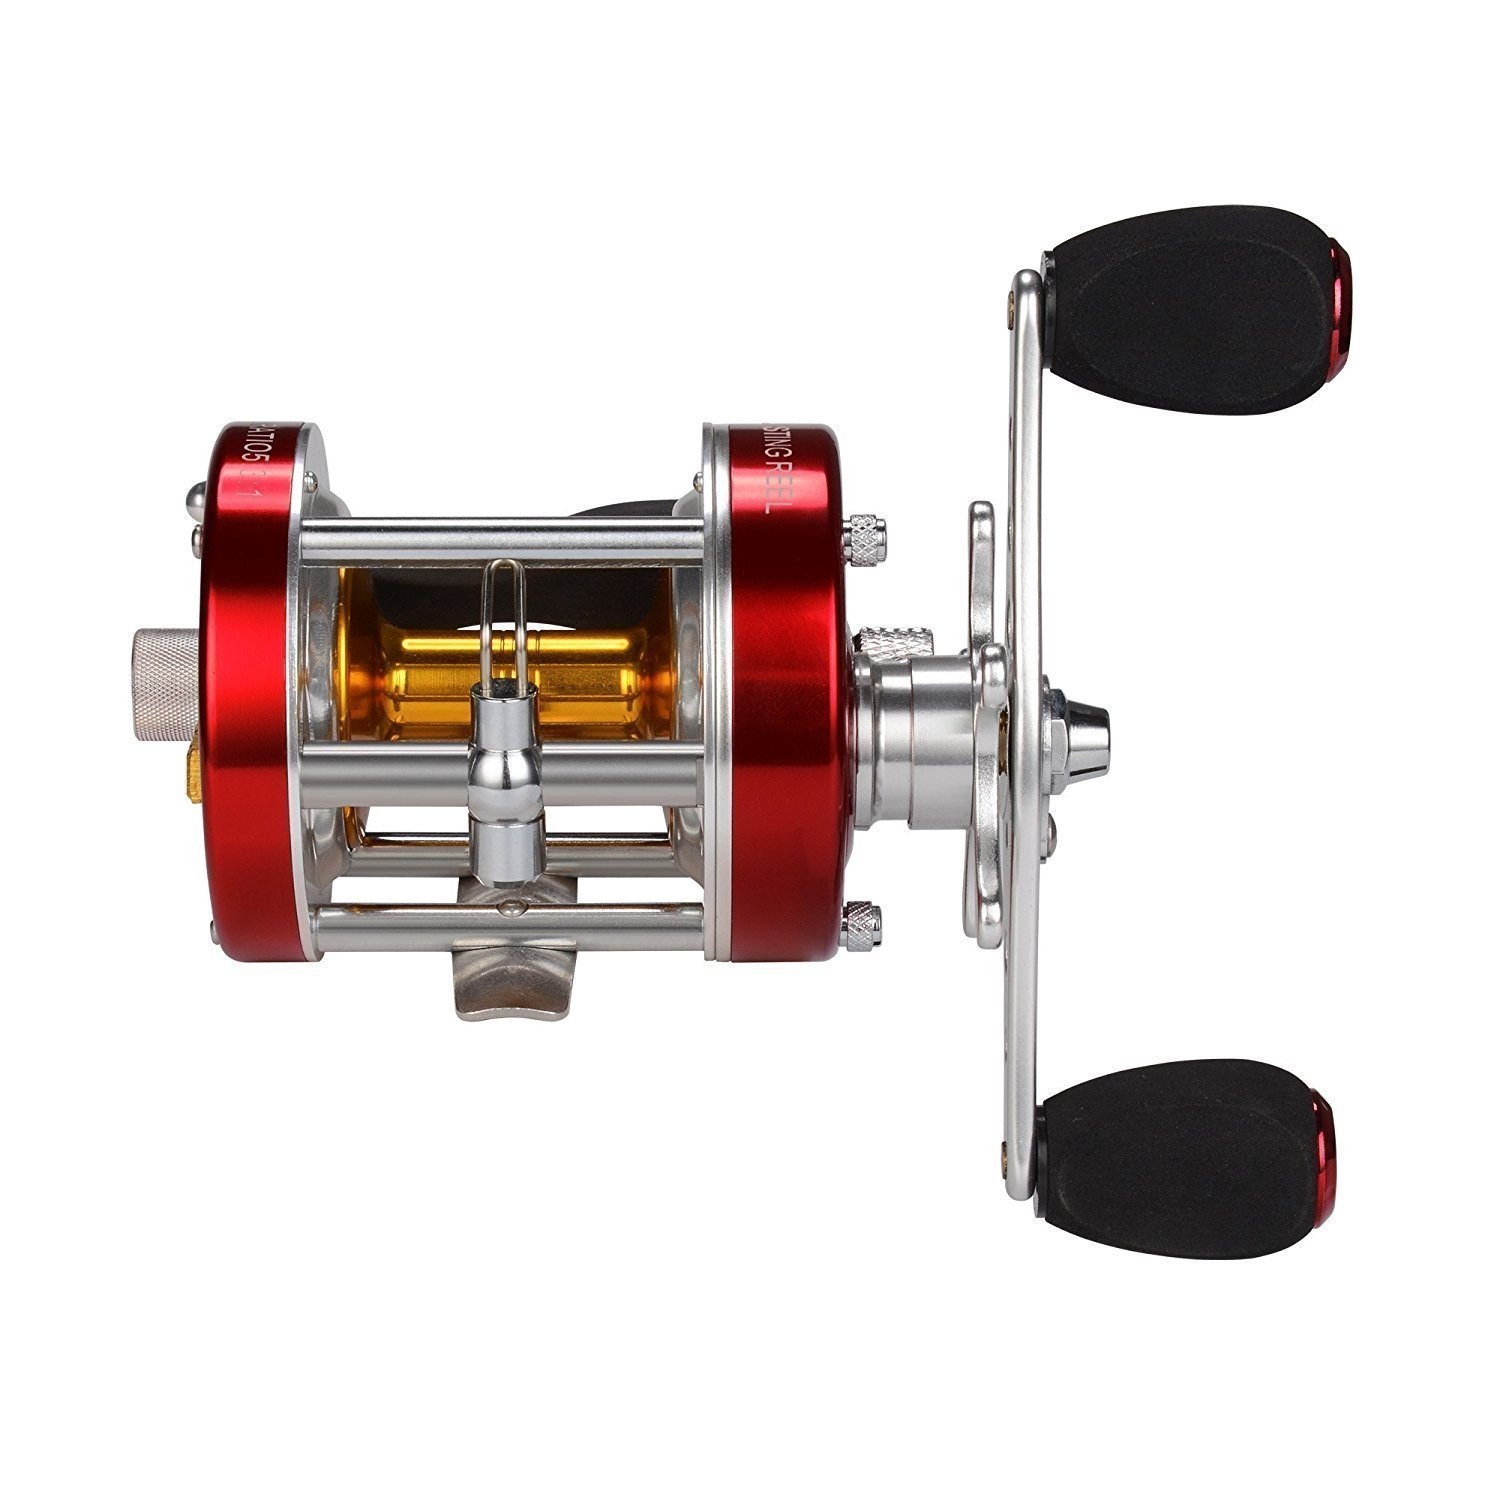 KastKing Rover Round Baitcasting Reel - No. 1 Rated Conventional Reel - Carbon Fiber Star Drag - Reinforced Metal Body by KastKing (Image #4)